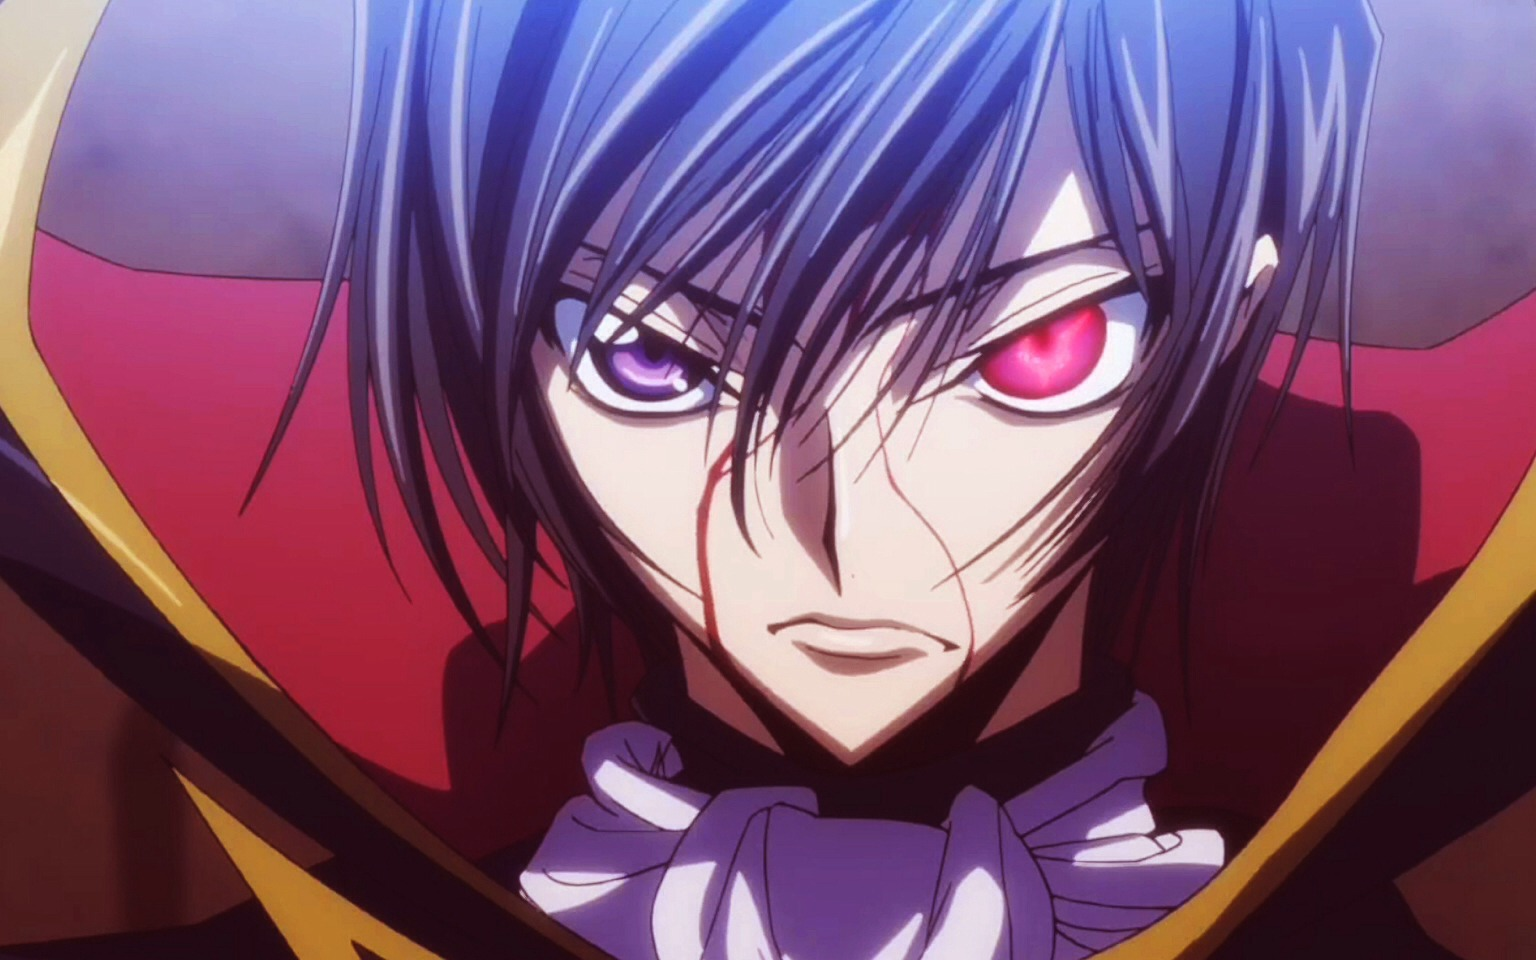 Code geass: a student receives a supernatural ability and uses it to wage a war.